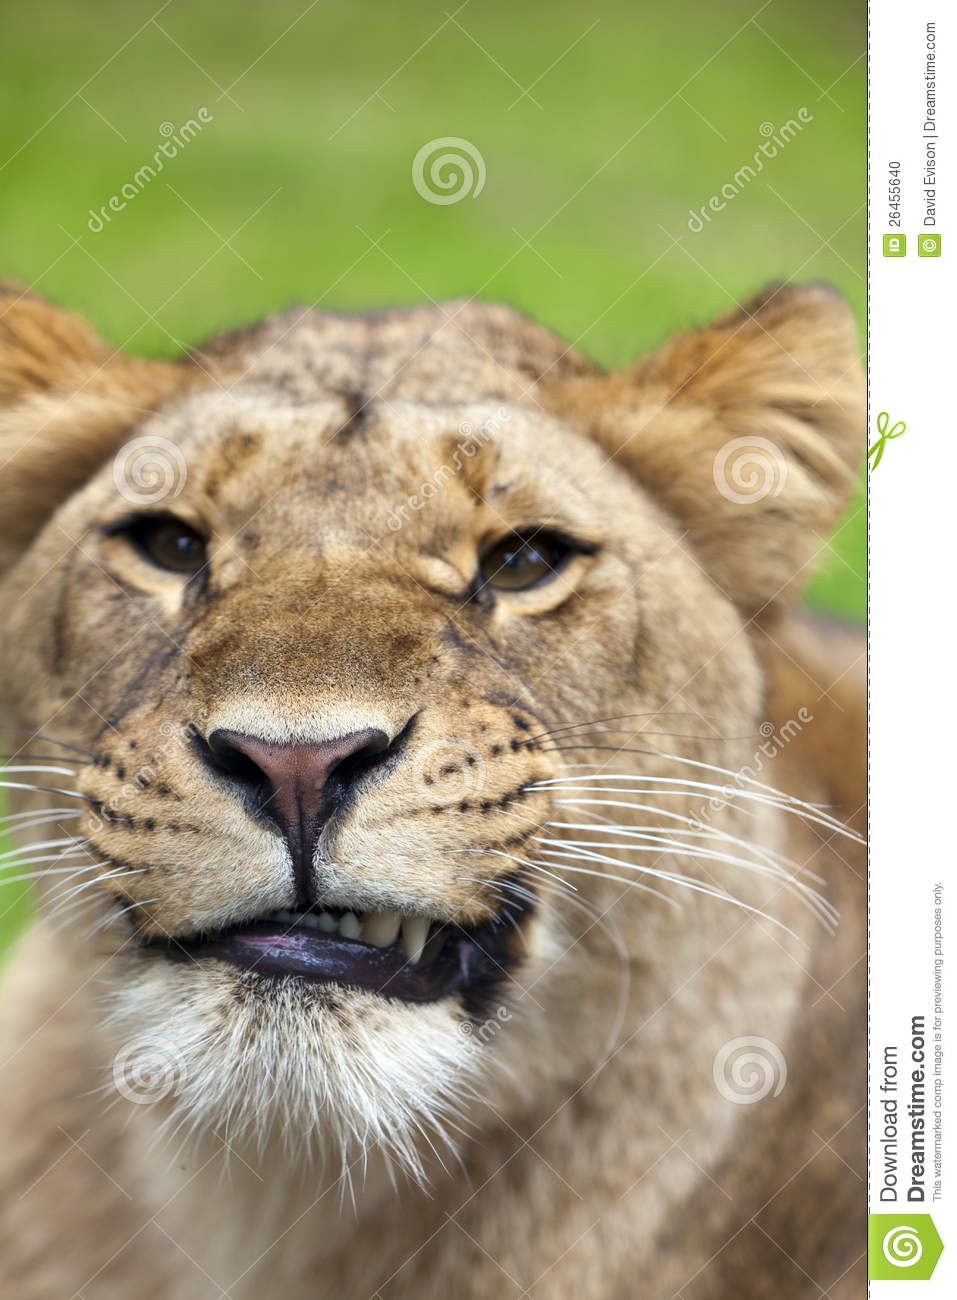 Angry Lioness Stock Photo - Image: 26455640